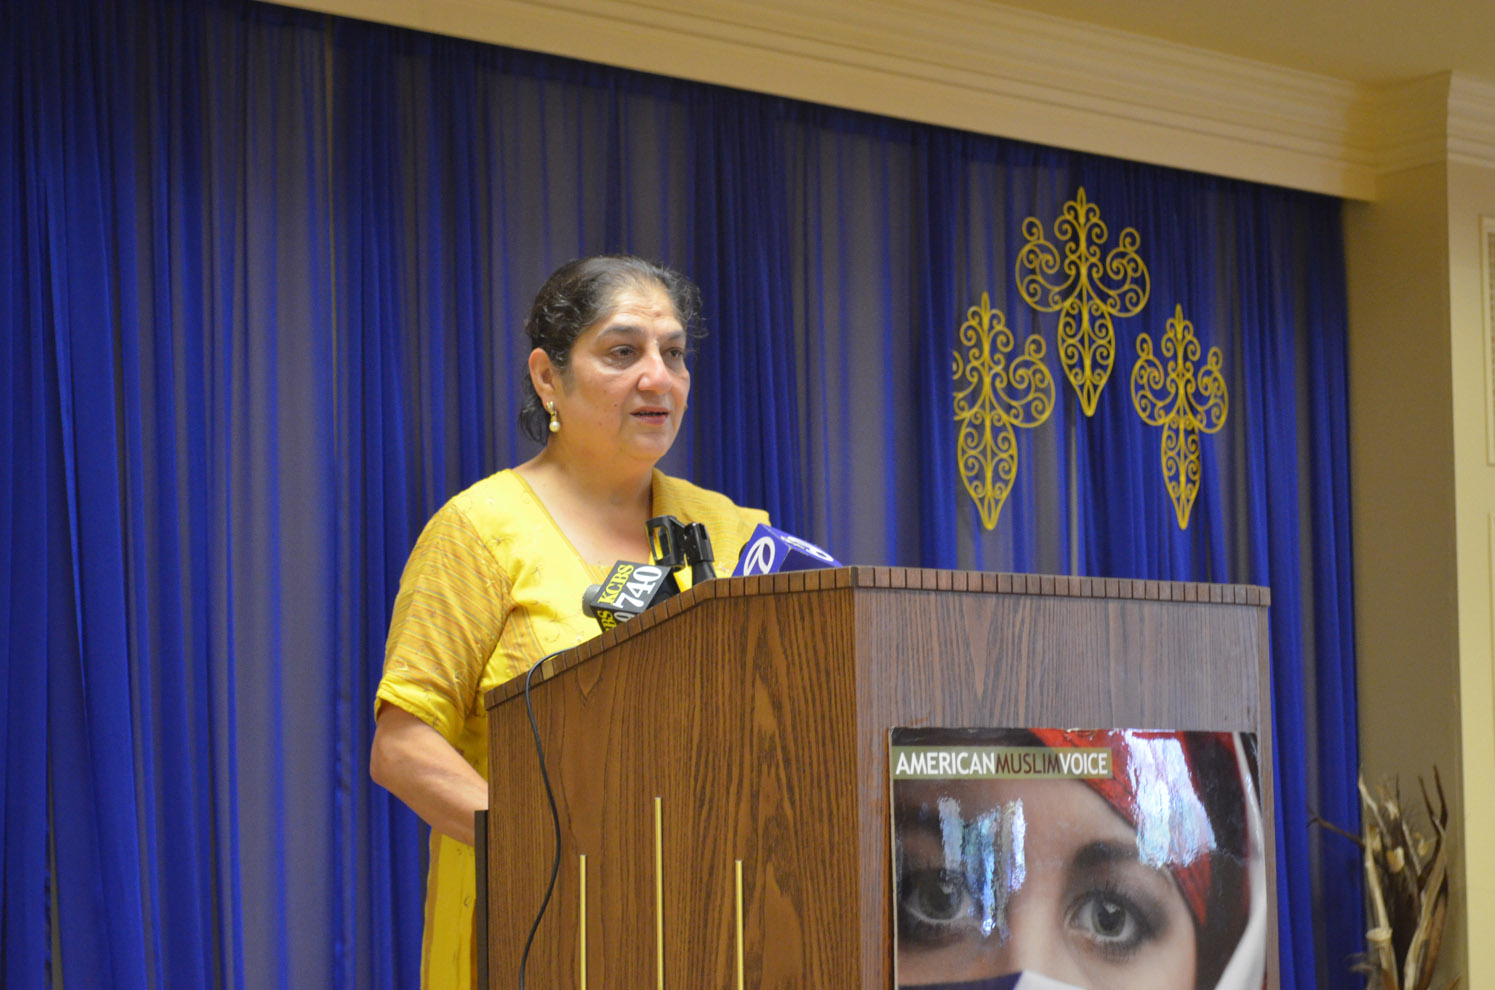 Samina Sundas, Founding Executive Director American Muslim Voice